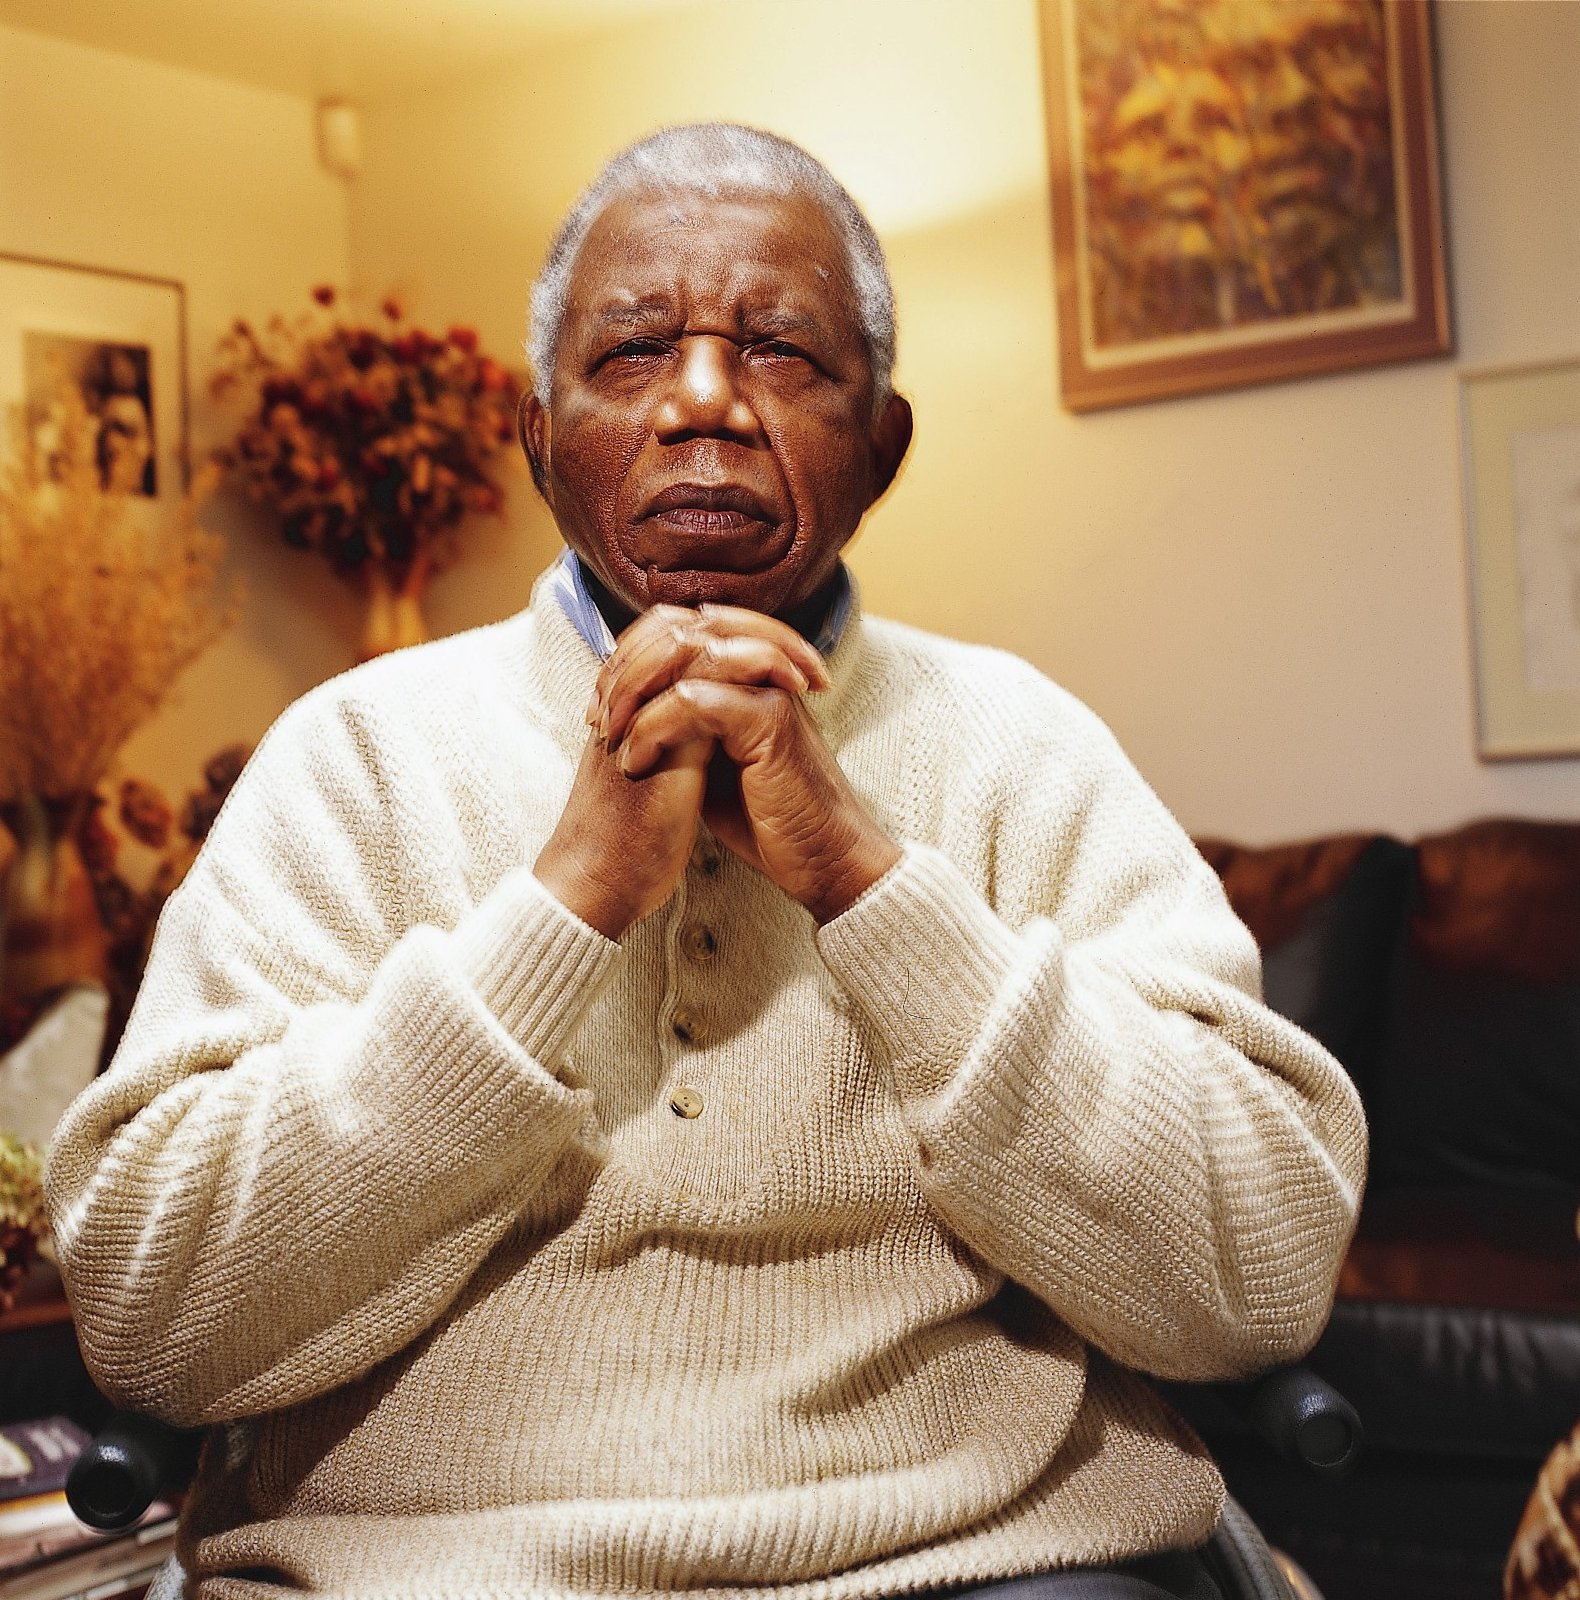 Nigerian Author Chinua Achebe, Who Wrote 'Things Fall